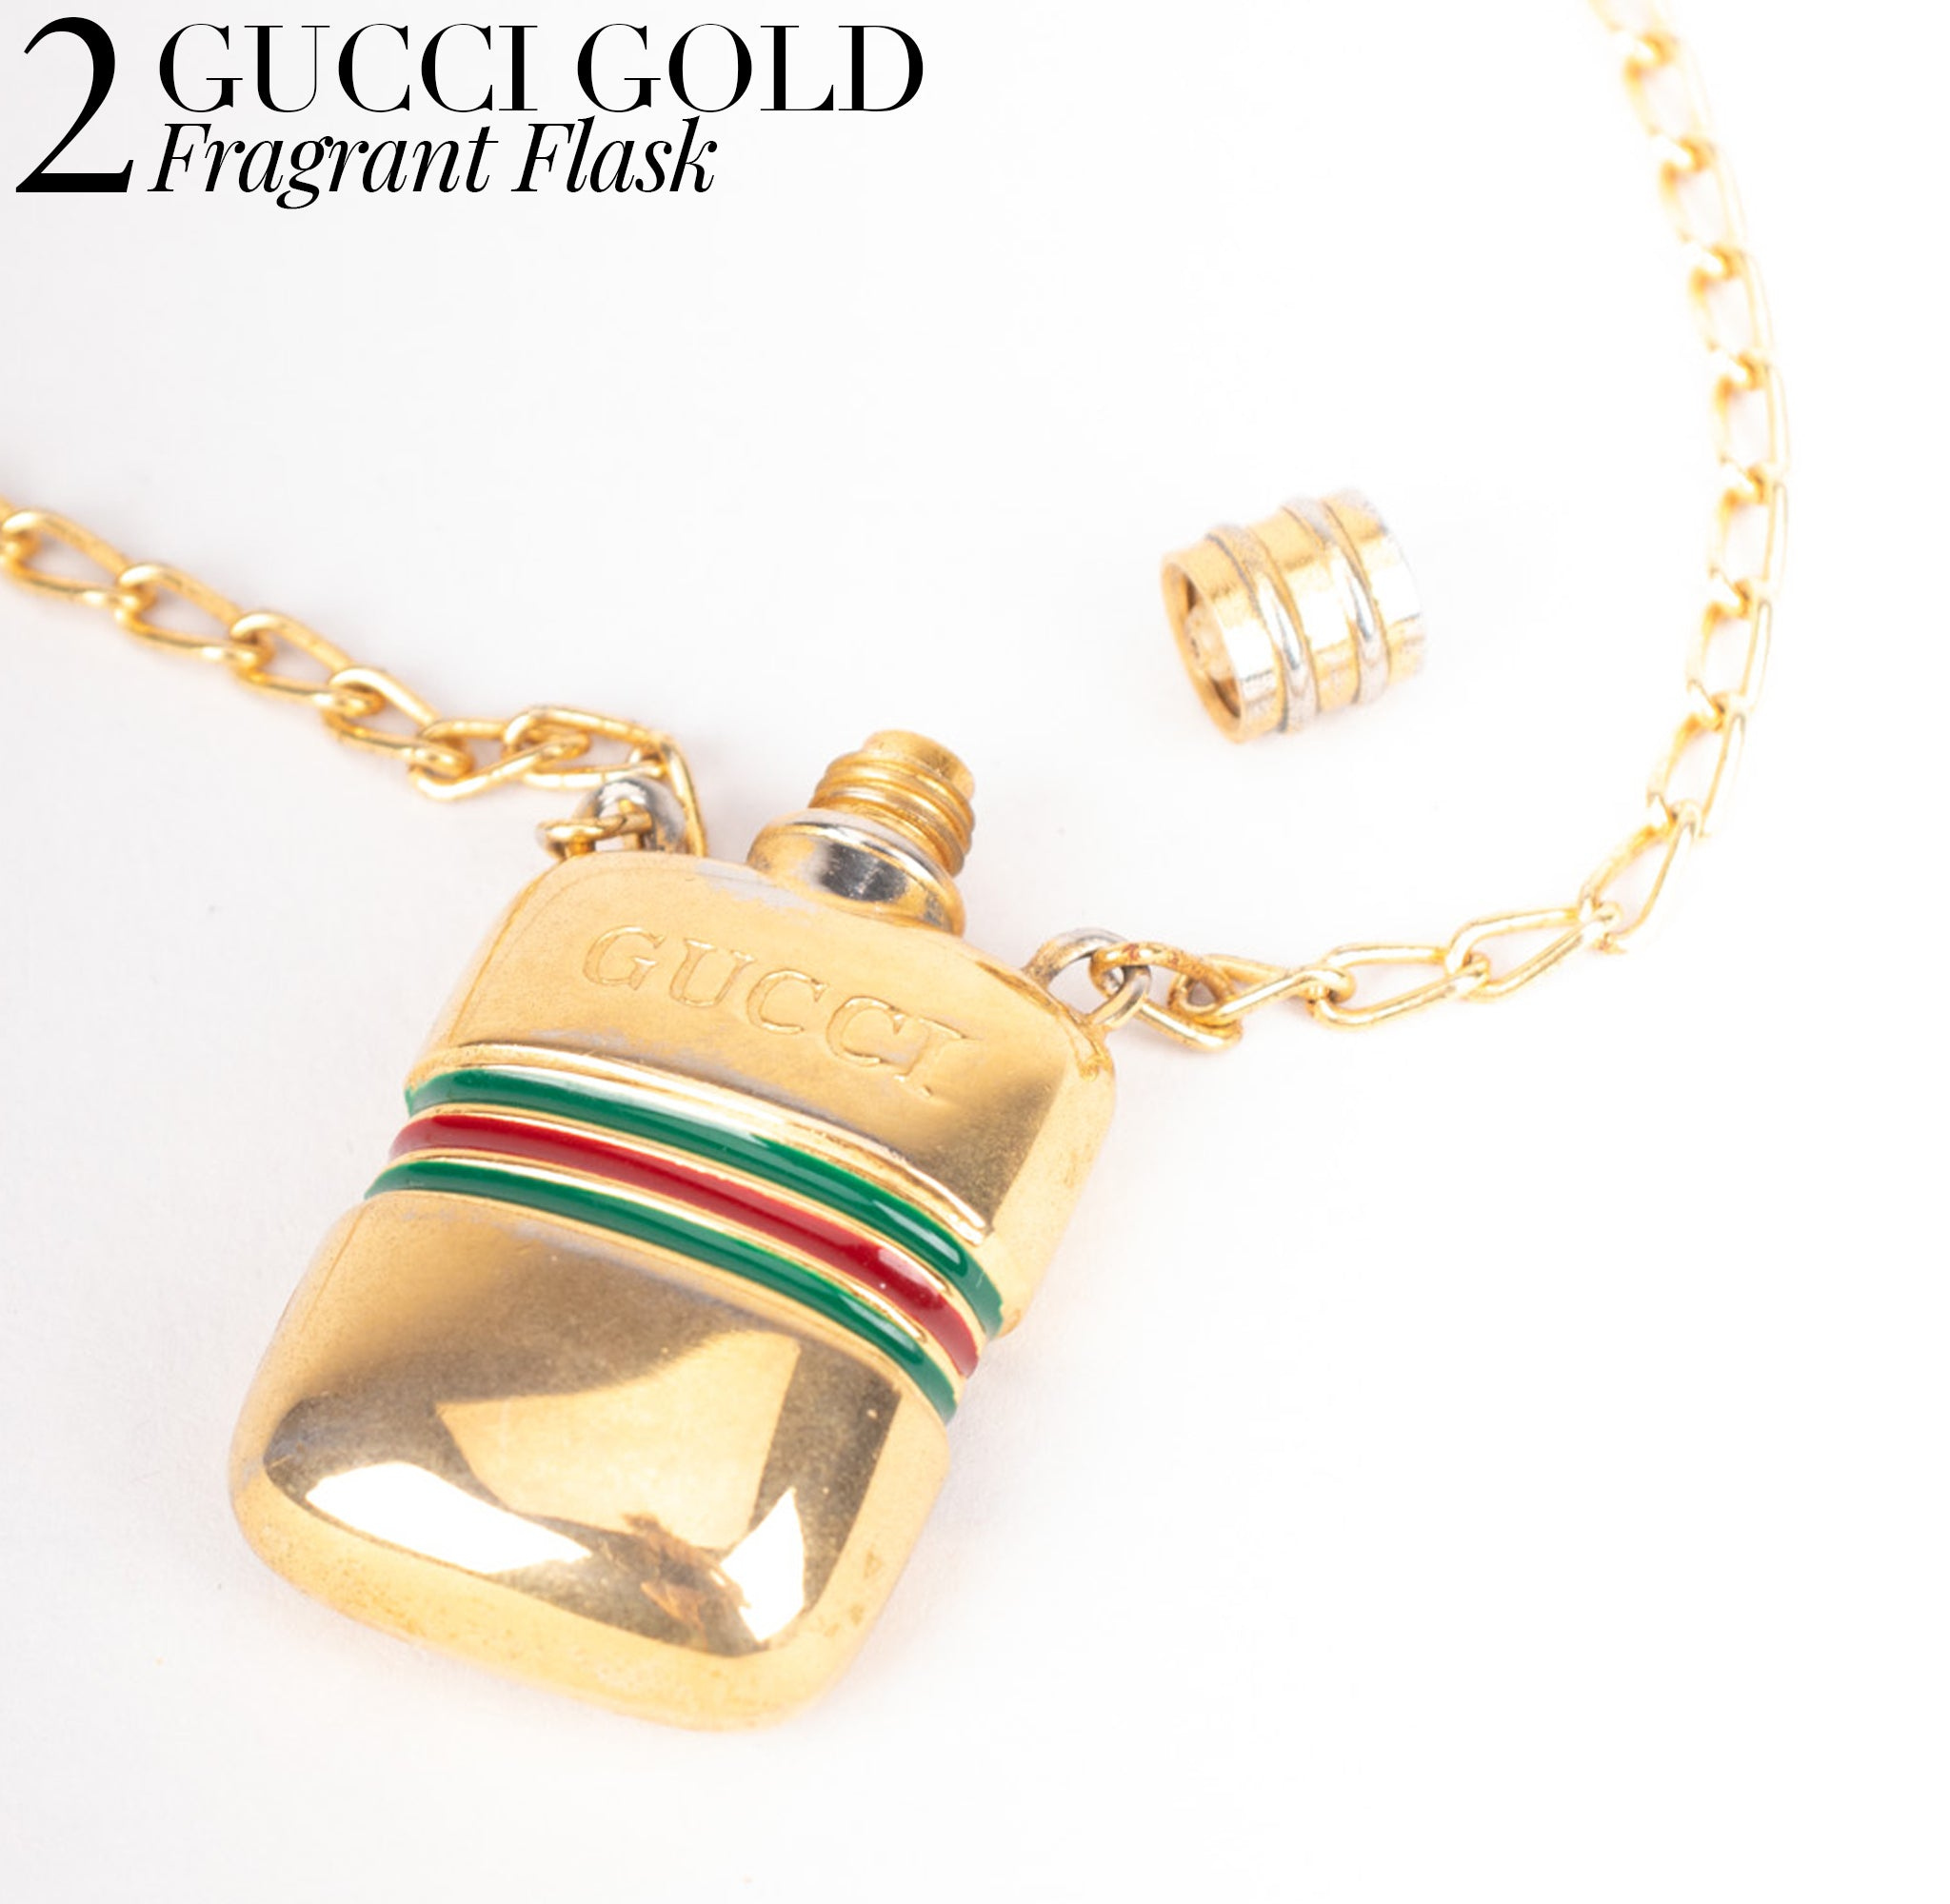 Recess Dress Code Logomania Gucci Flask Perfume Snuff Coke Pendant Necklace